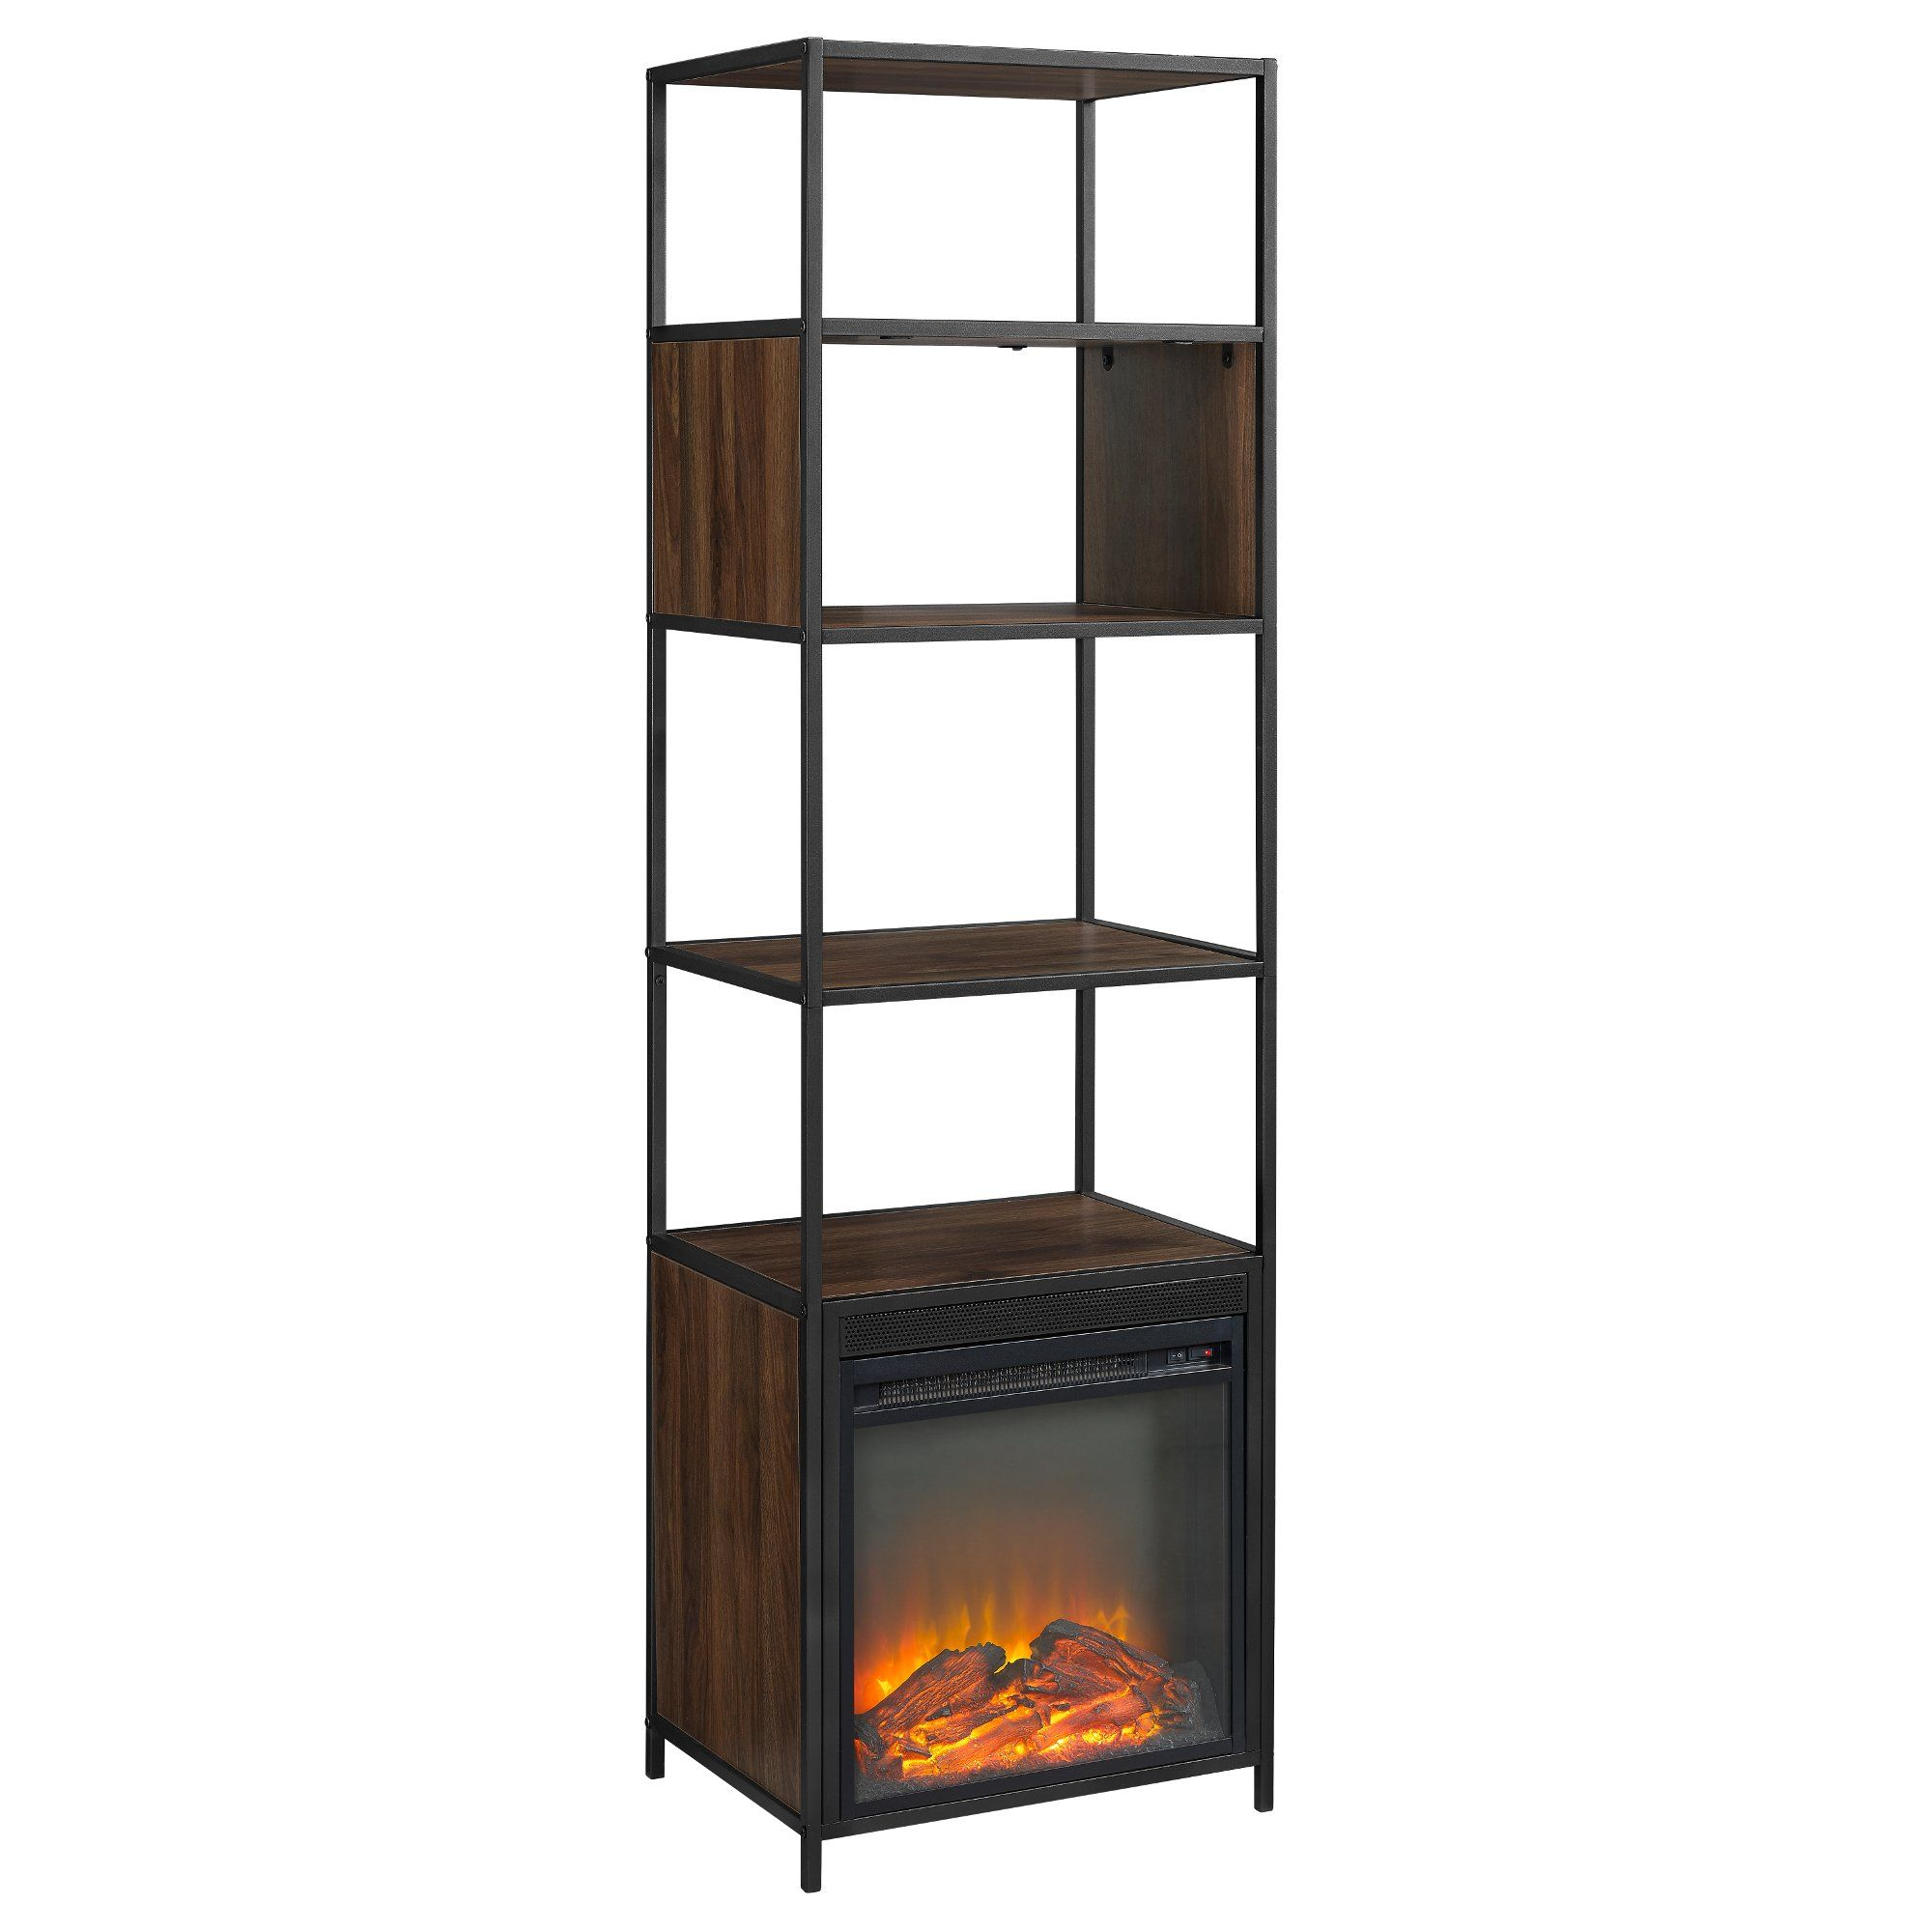 Wood 70 Inch Bookshelf With Fireplace